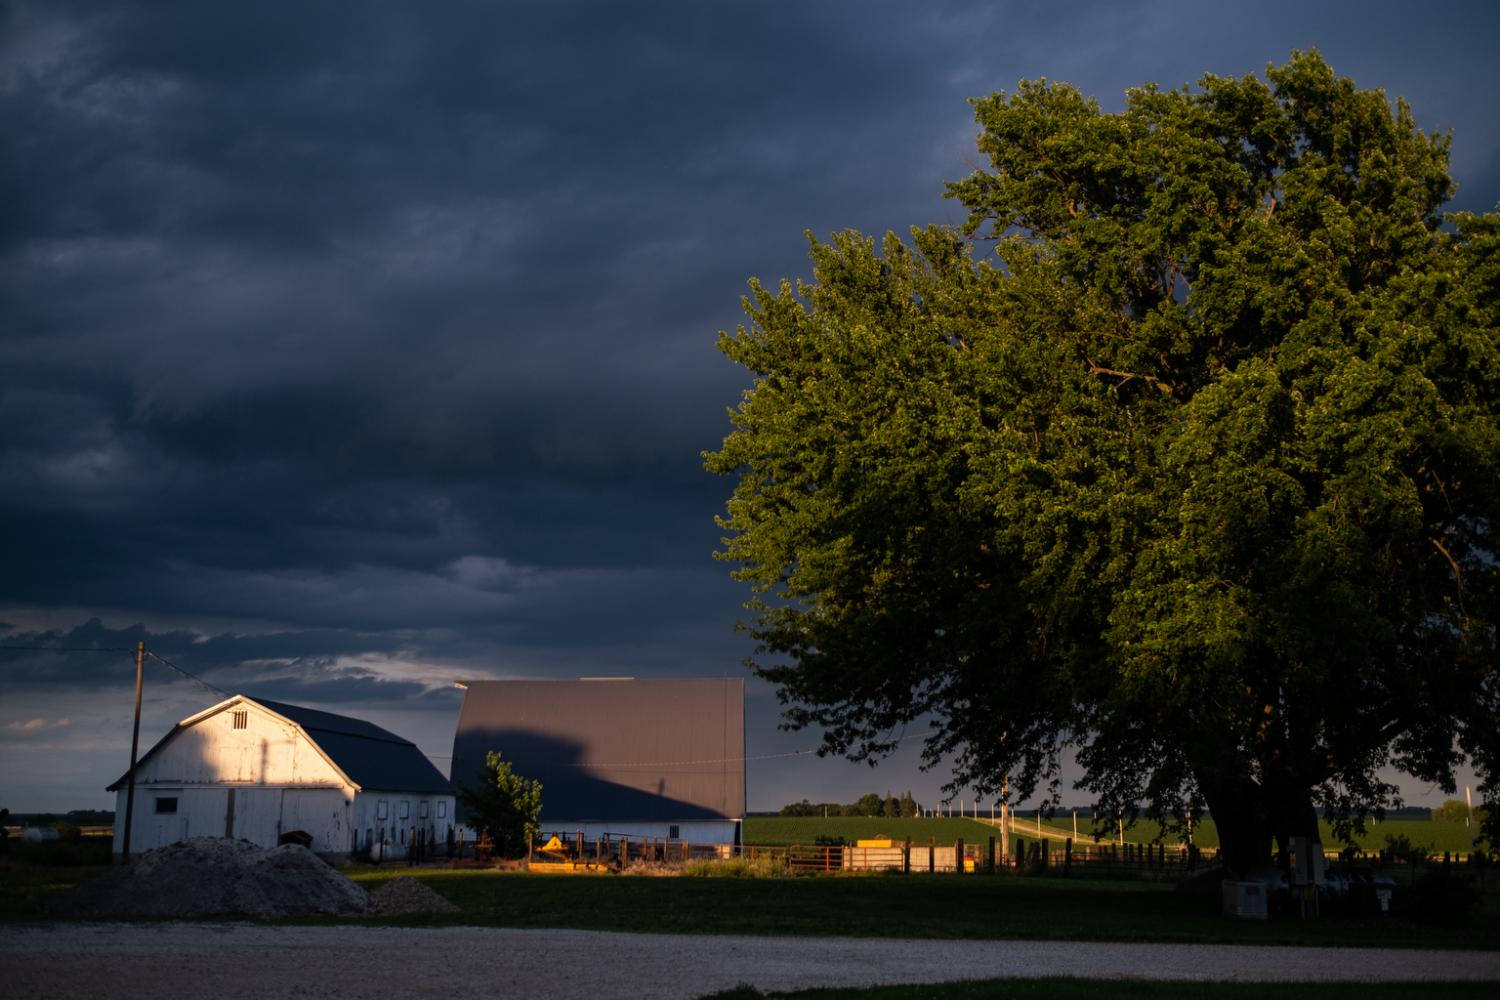 A small storm rolls through, rain in the summer really helps the crops grow.